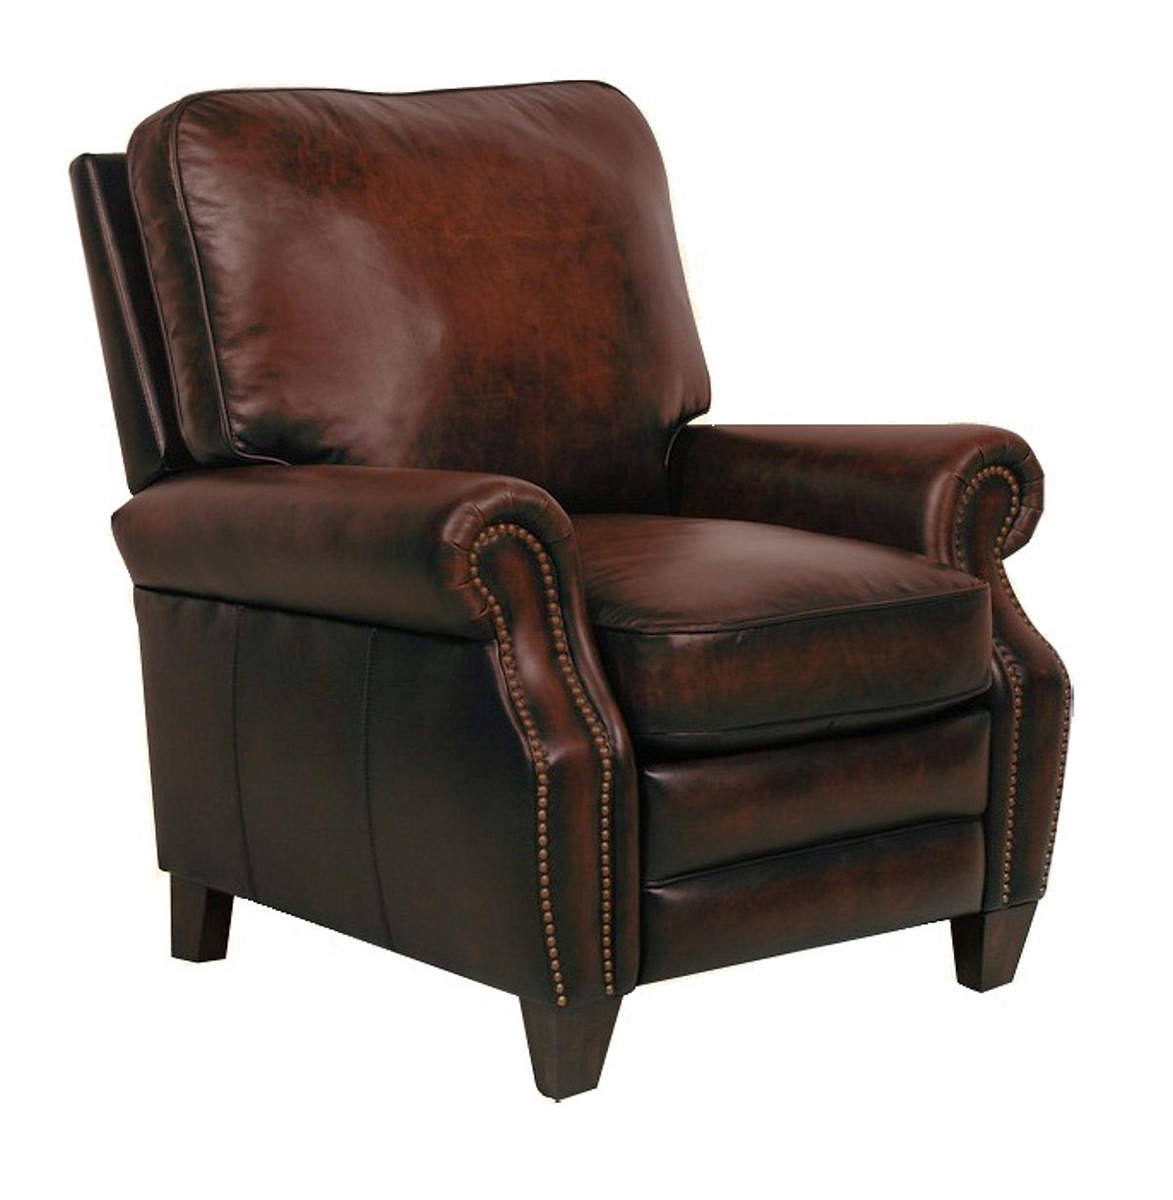 Barcalounger Briarwood Recliner Chair - Stetson Coffee/All Leather